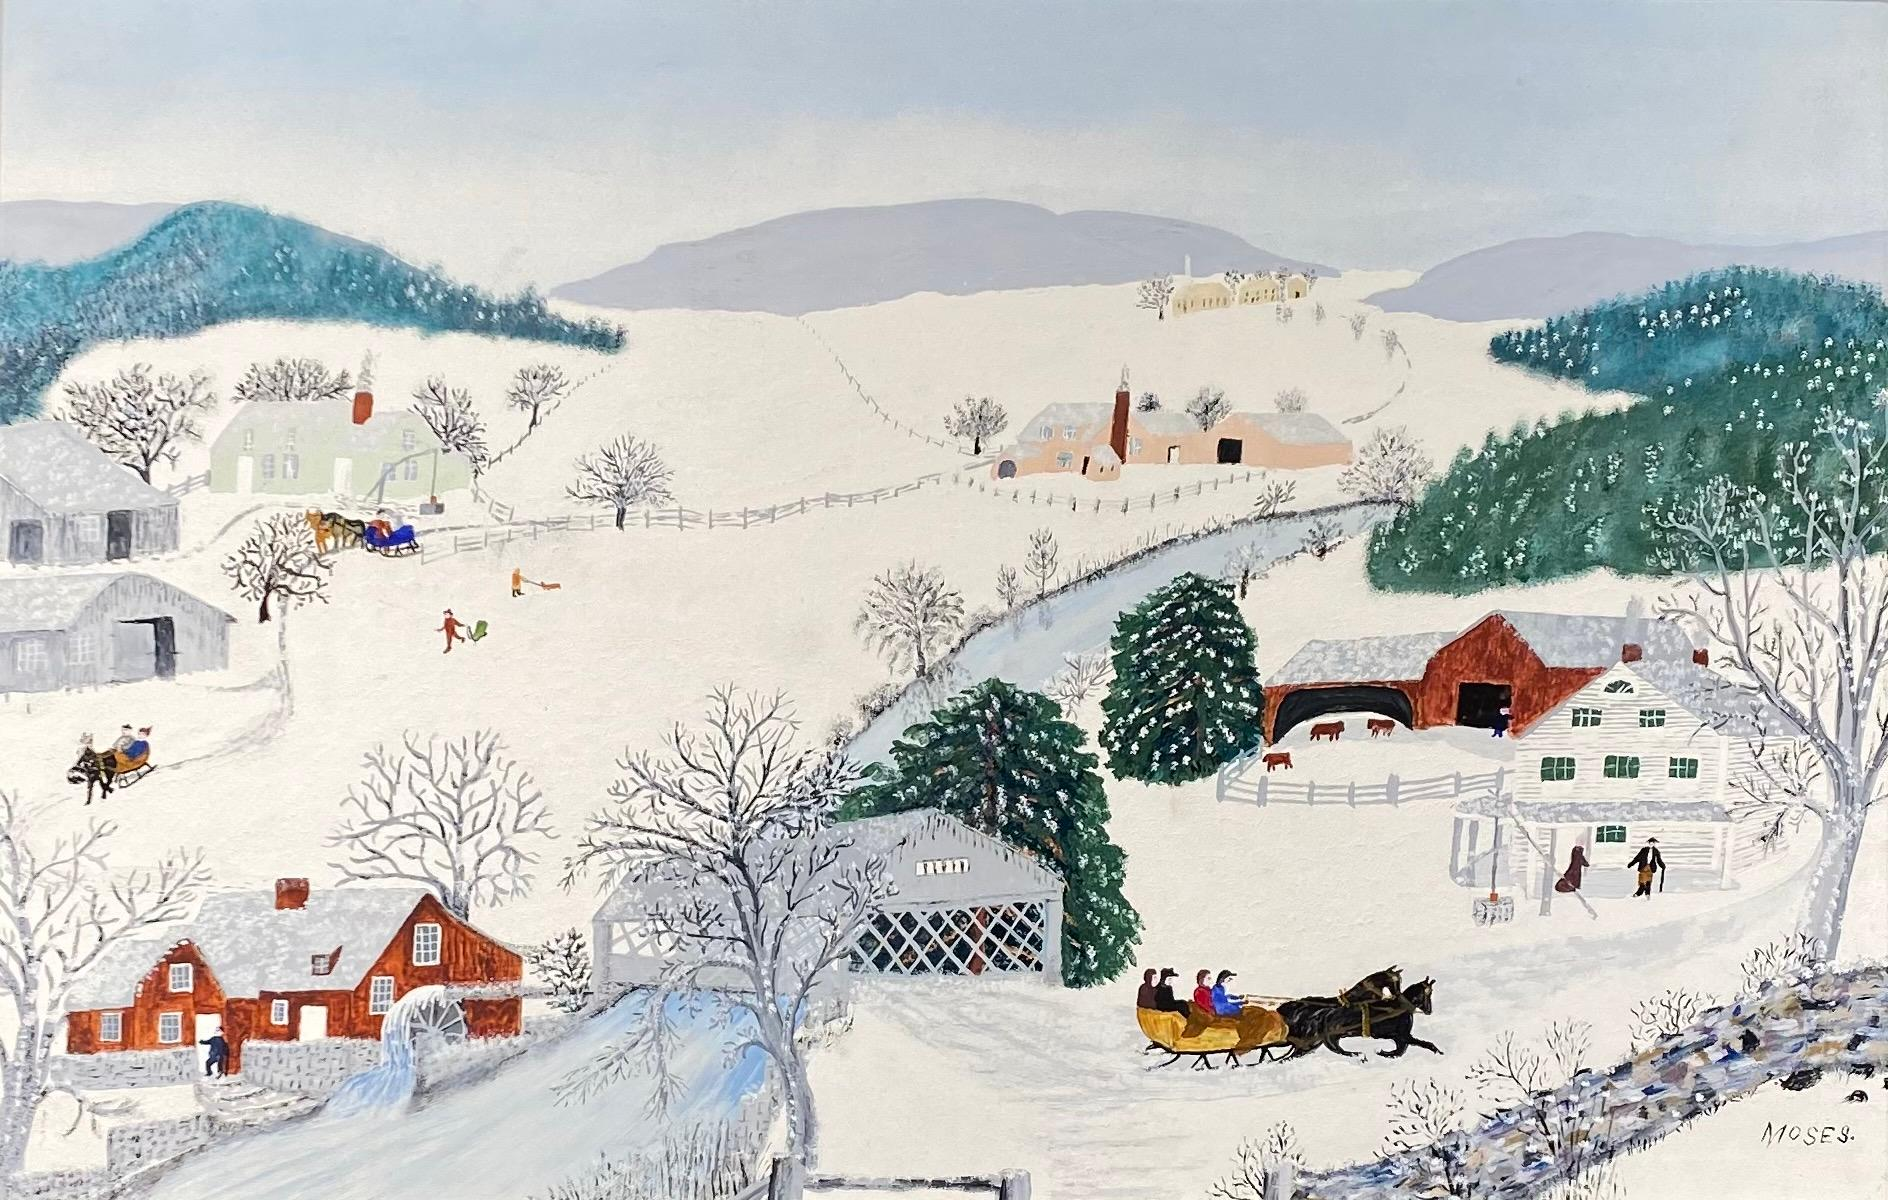 ANNA MARY ROBERTSON 'GRANDMA' MOSES, American 1860-1961, Over the River to Grandma's House on Thanksgiving Day, 1944, oil on pressed wood, 17 x 26 in., frame: 25 1/2 x 34 1/2 in.